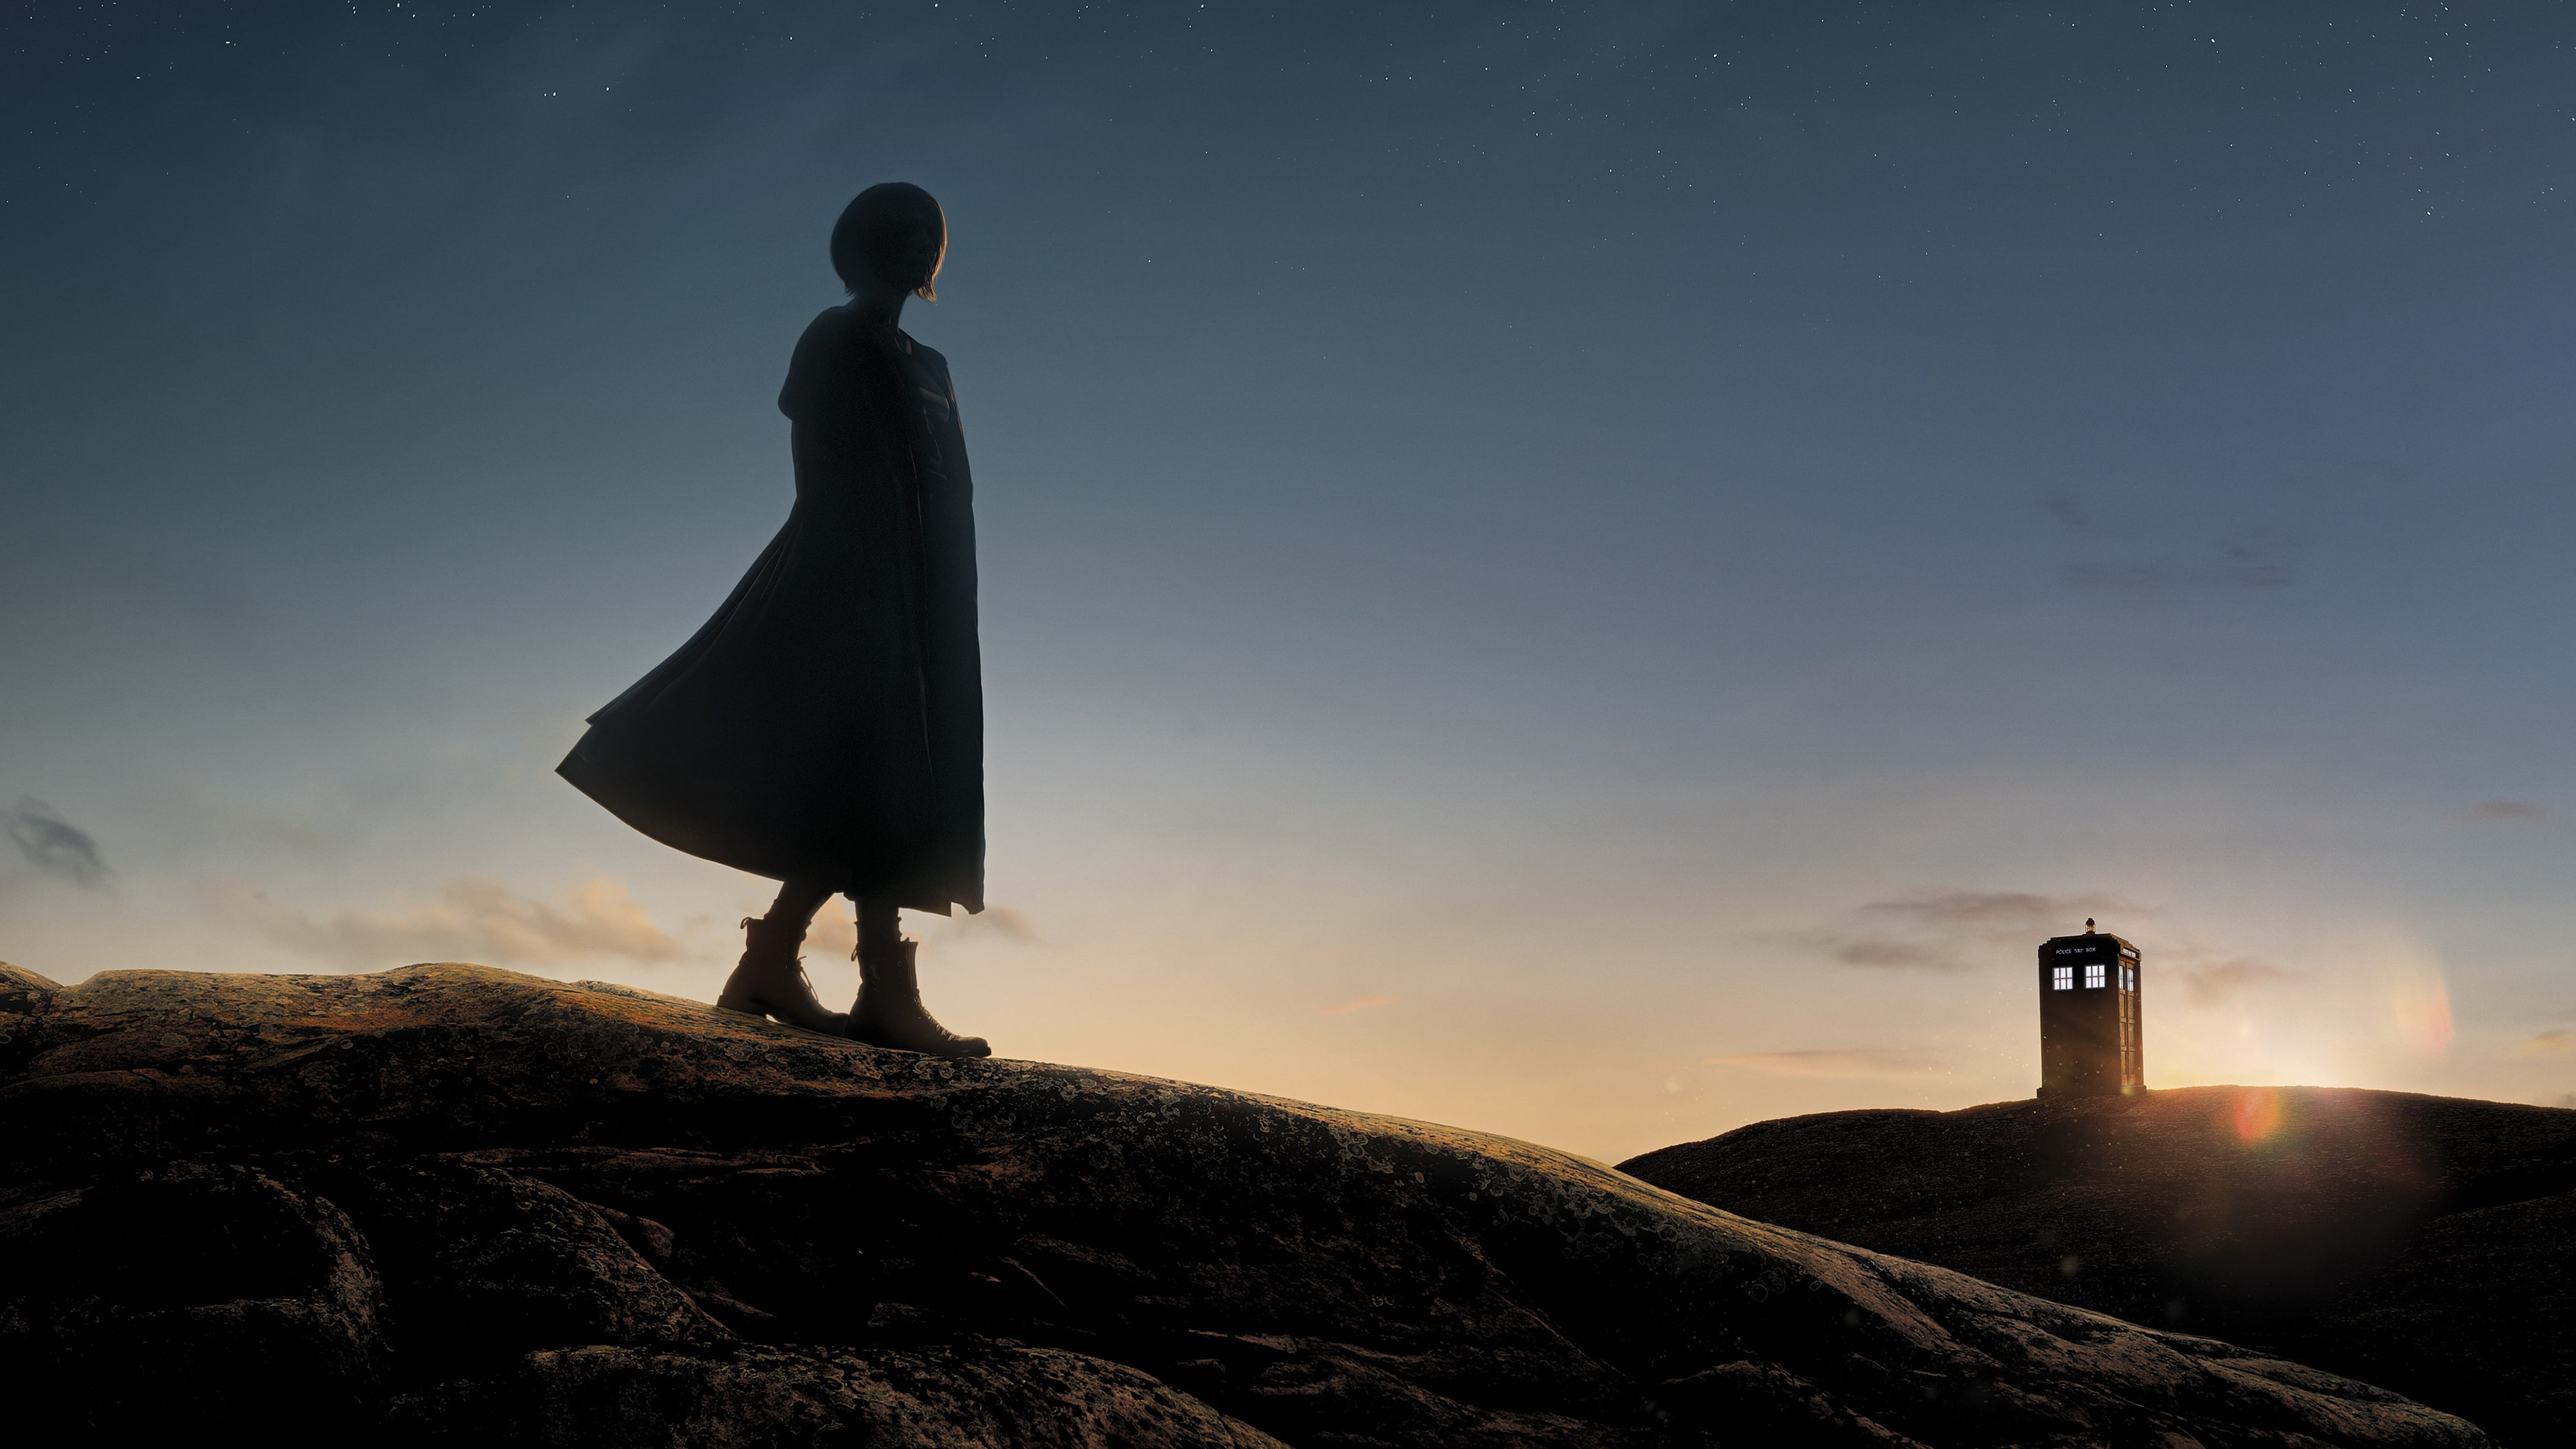 """The Doctor is an alien Time Lord from the planet Gallifrey who travels through all of time and space in the TARDIS. The Doctor has a long list of friends and companions who have shared journeys along the way. Instead of dying, the Doctor is able to """"regenerate"""" into a new body, taking on a new personality with each regeneration."""